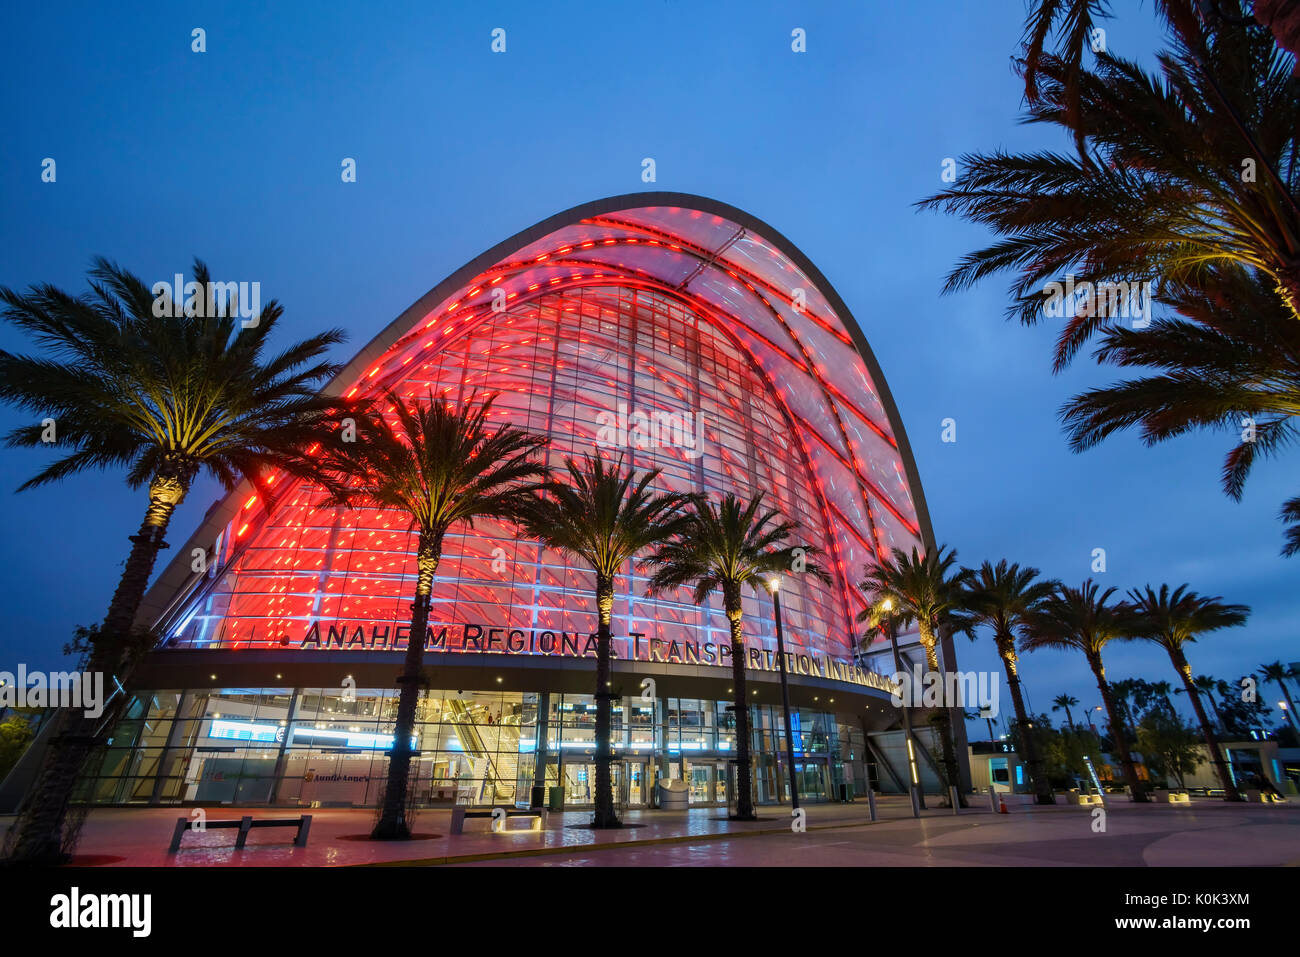 Anaheim, JUN 3: The beautiful Anaheim Regional Intermodal Transit Center on JUN 3, 2017 at Anaheim, California - Stock Image